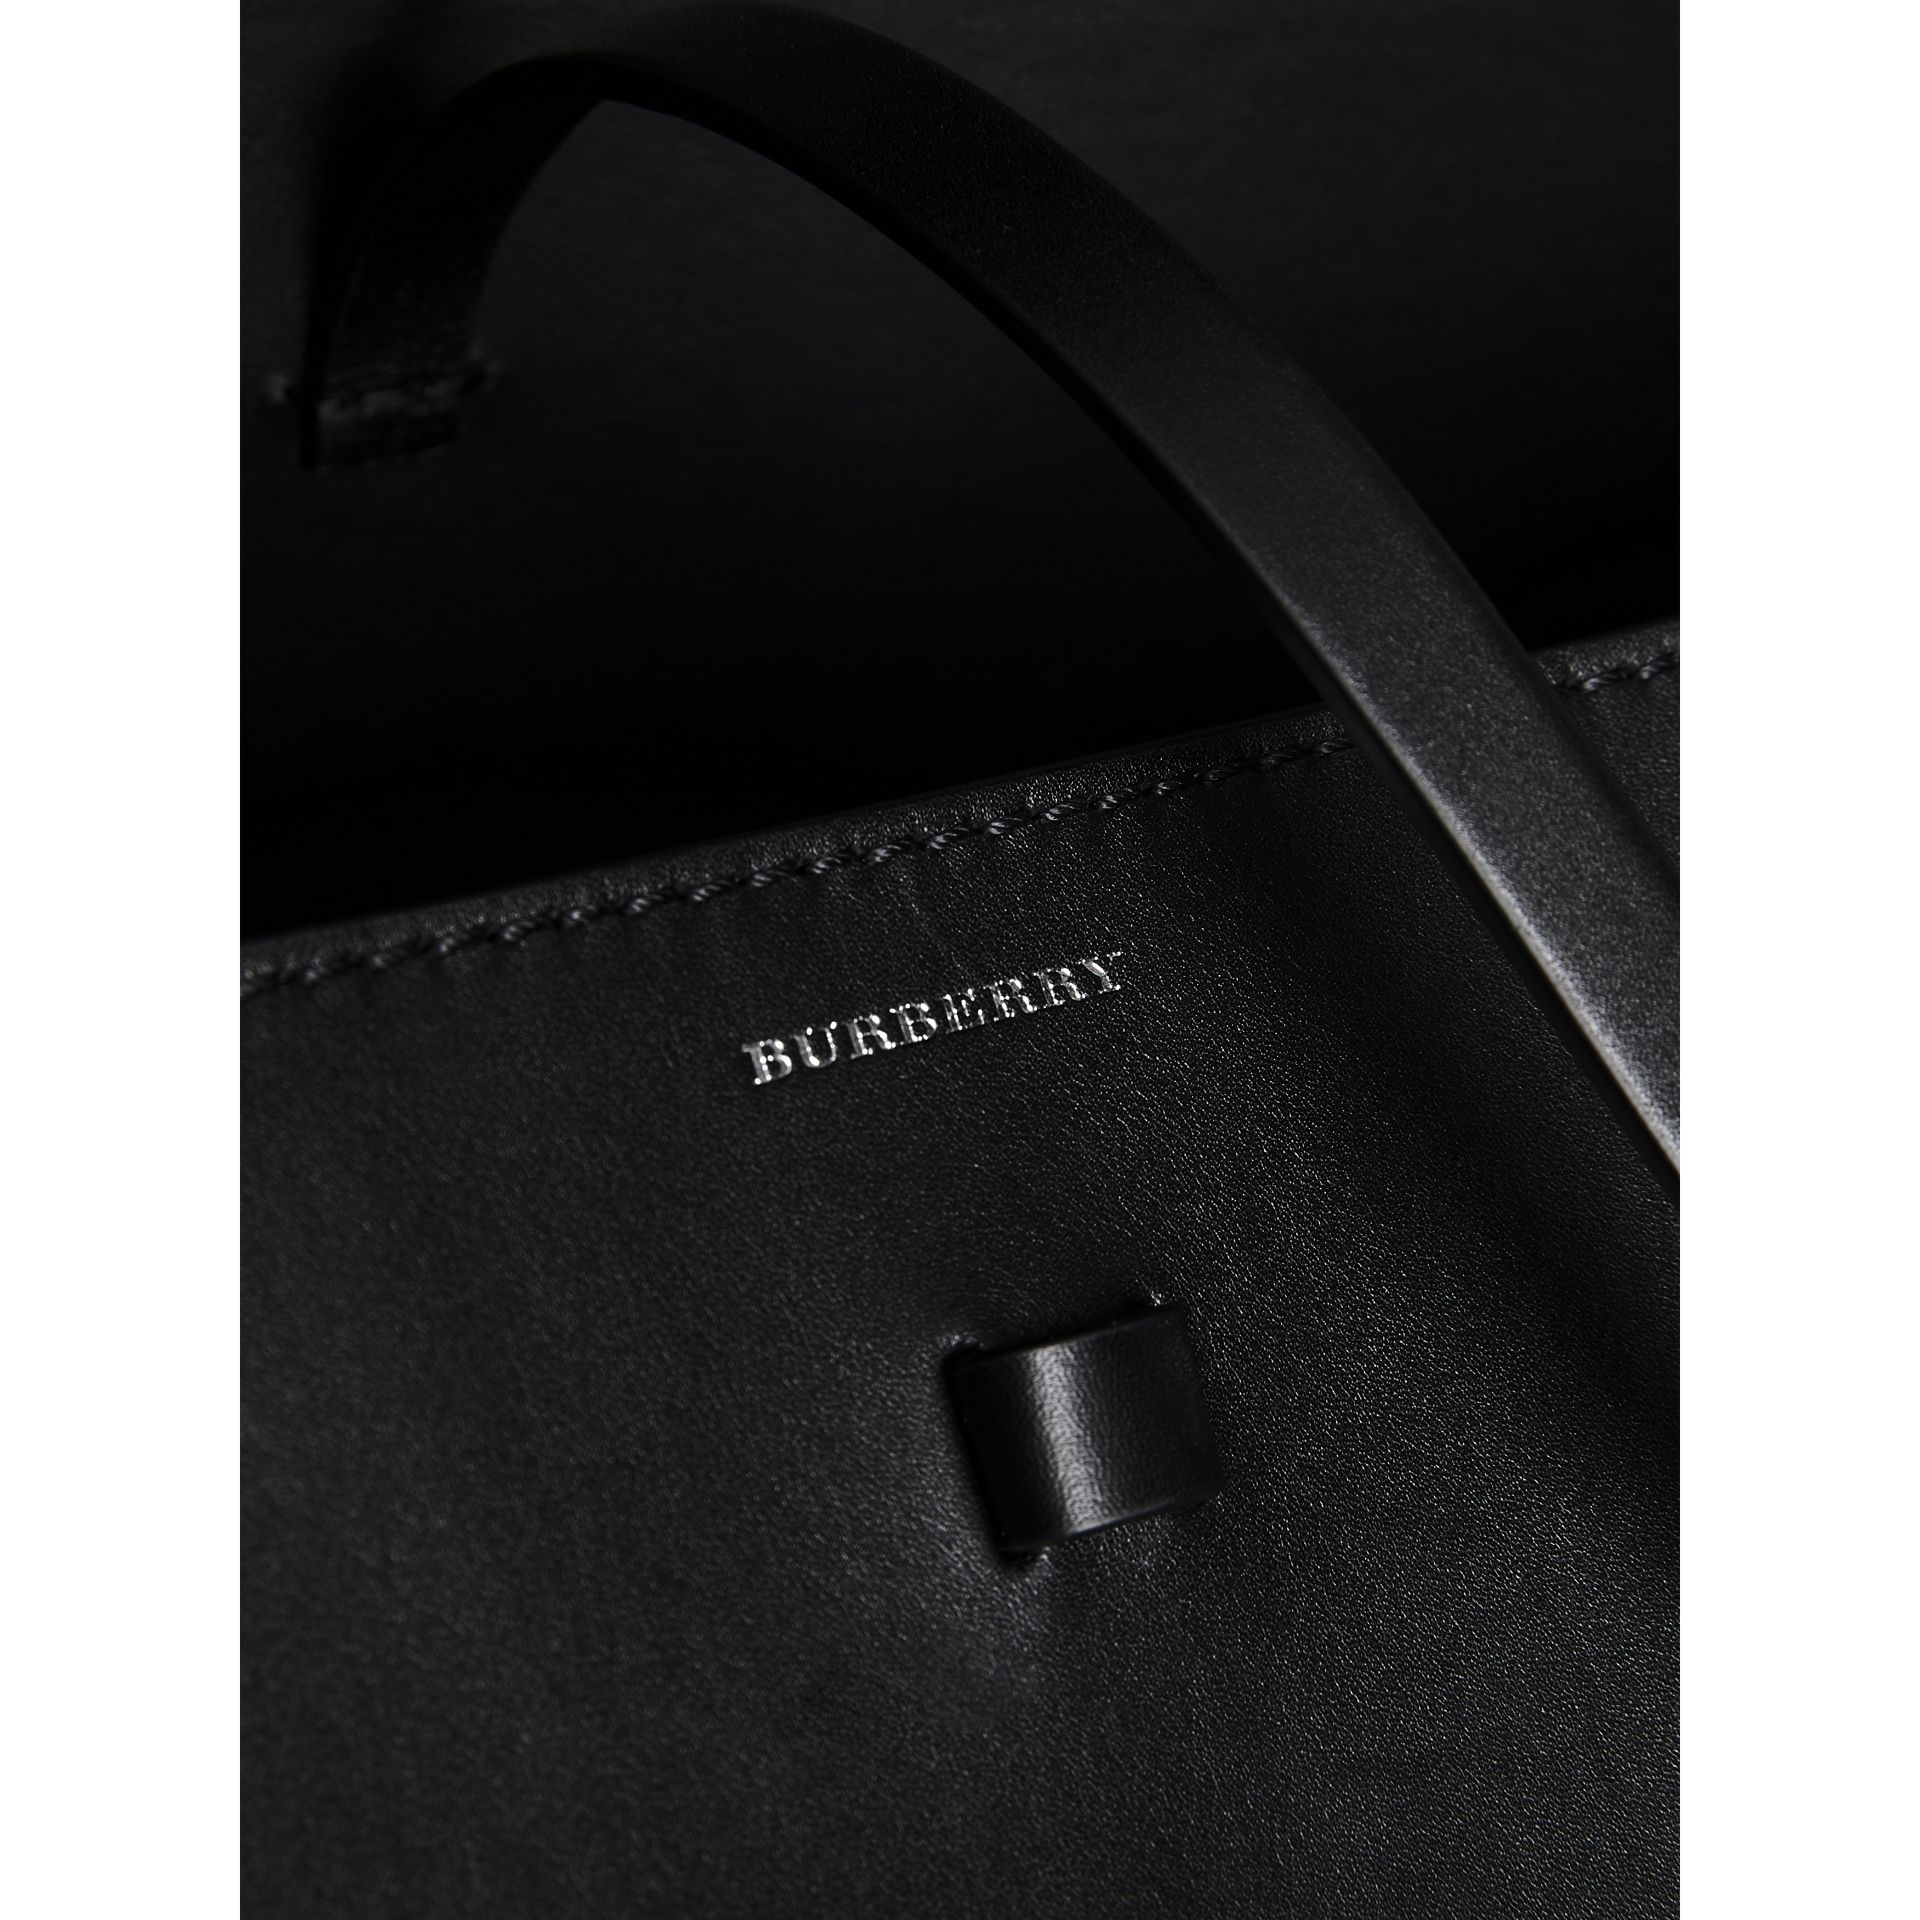 The Large Cotton Linen and Leather Bucket Bag in Black - Women | Burberry United States - gallery image 1